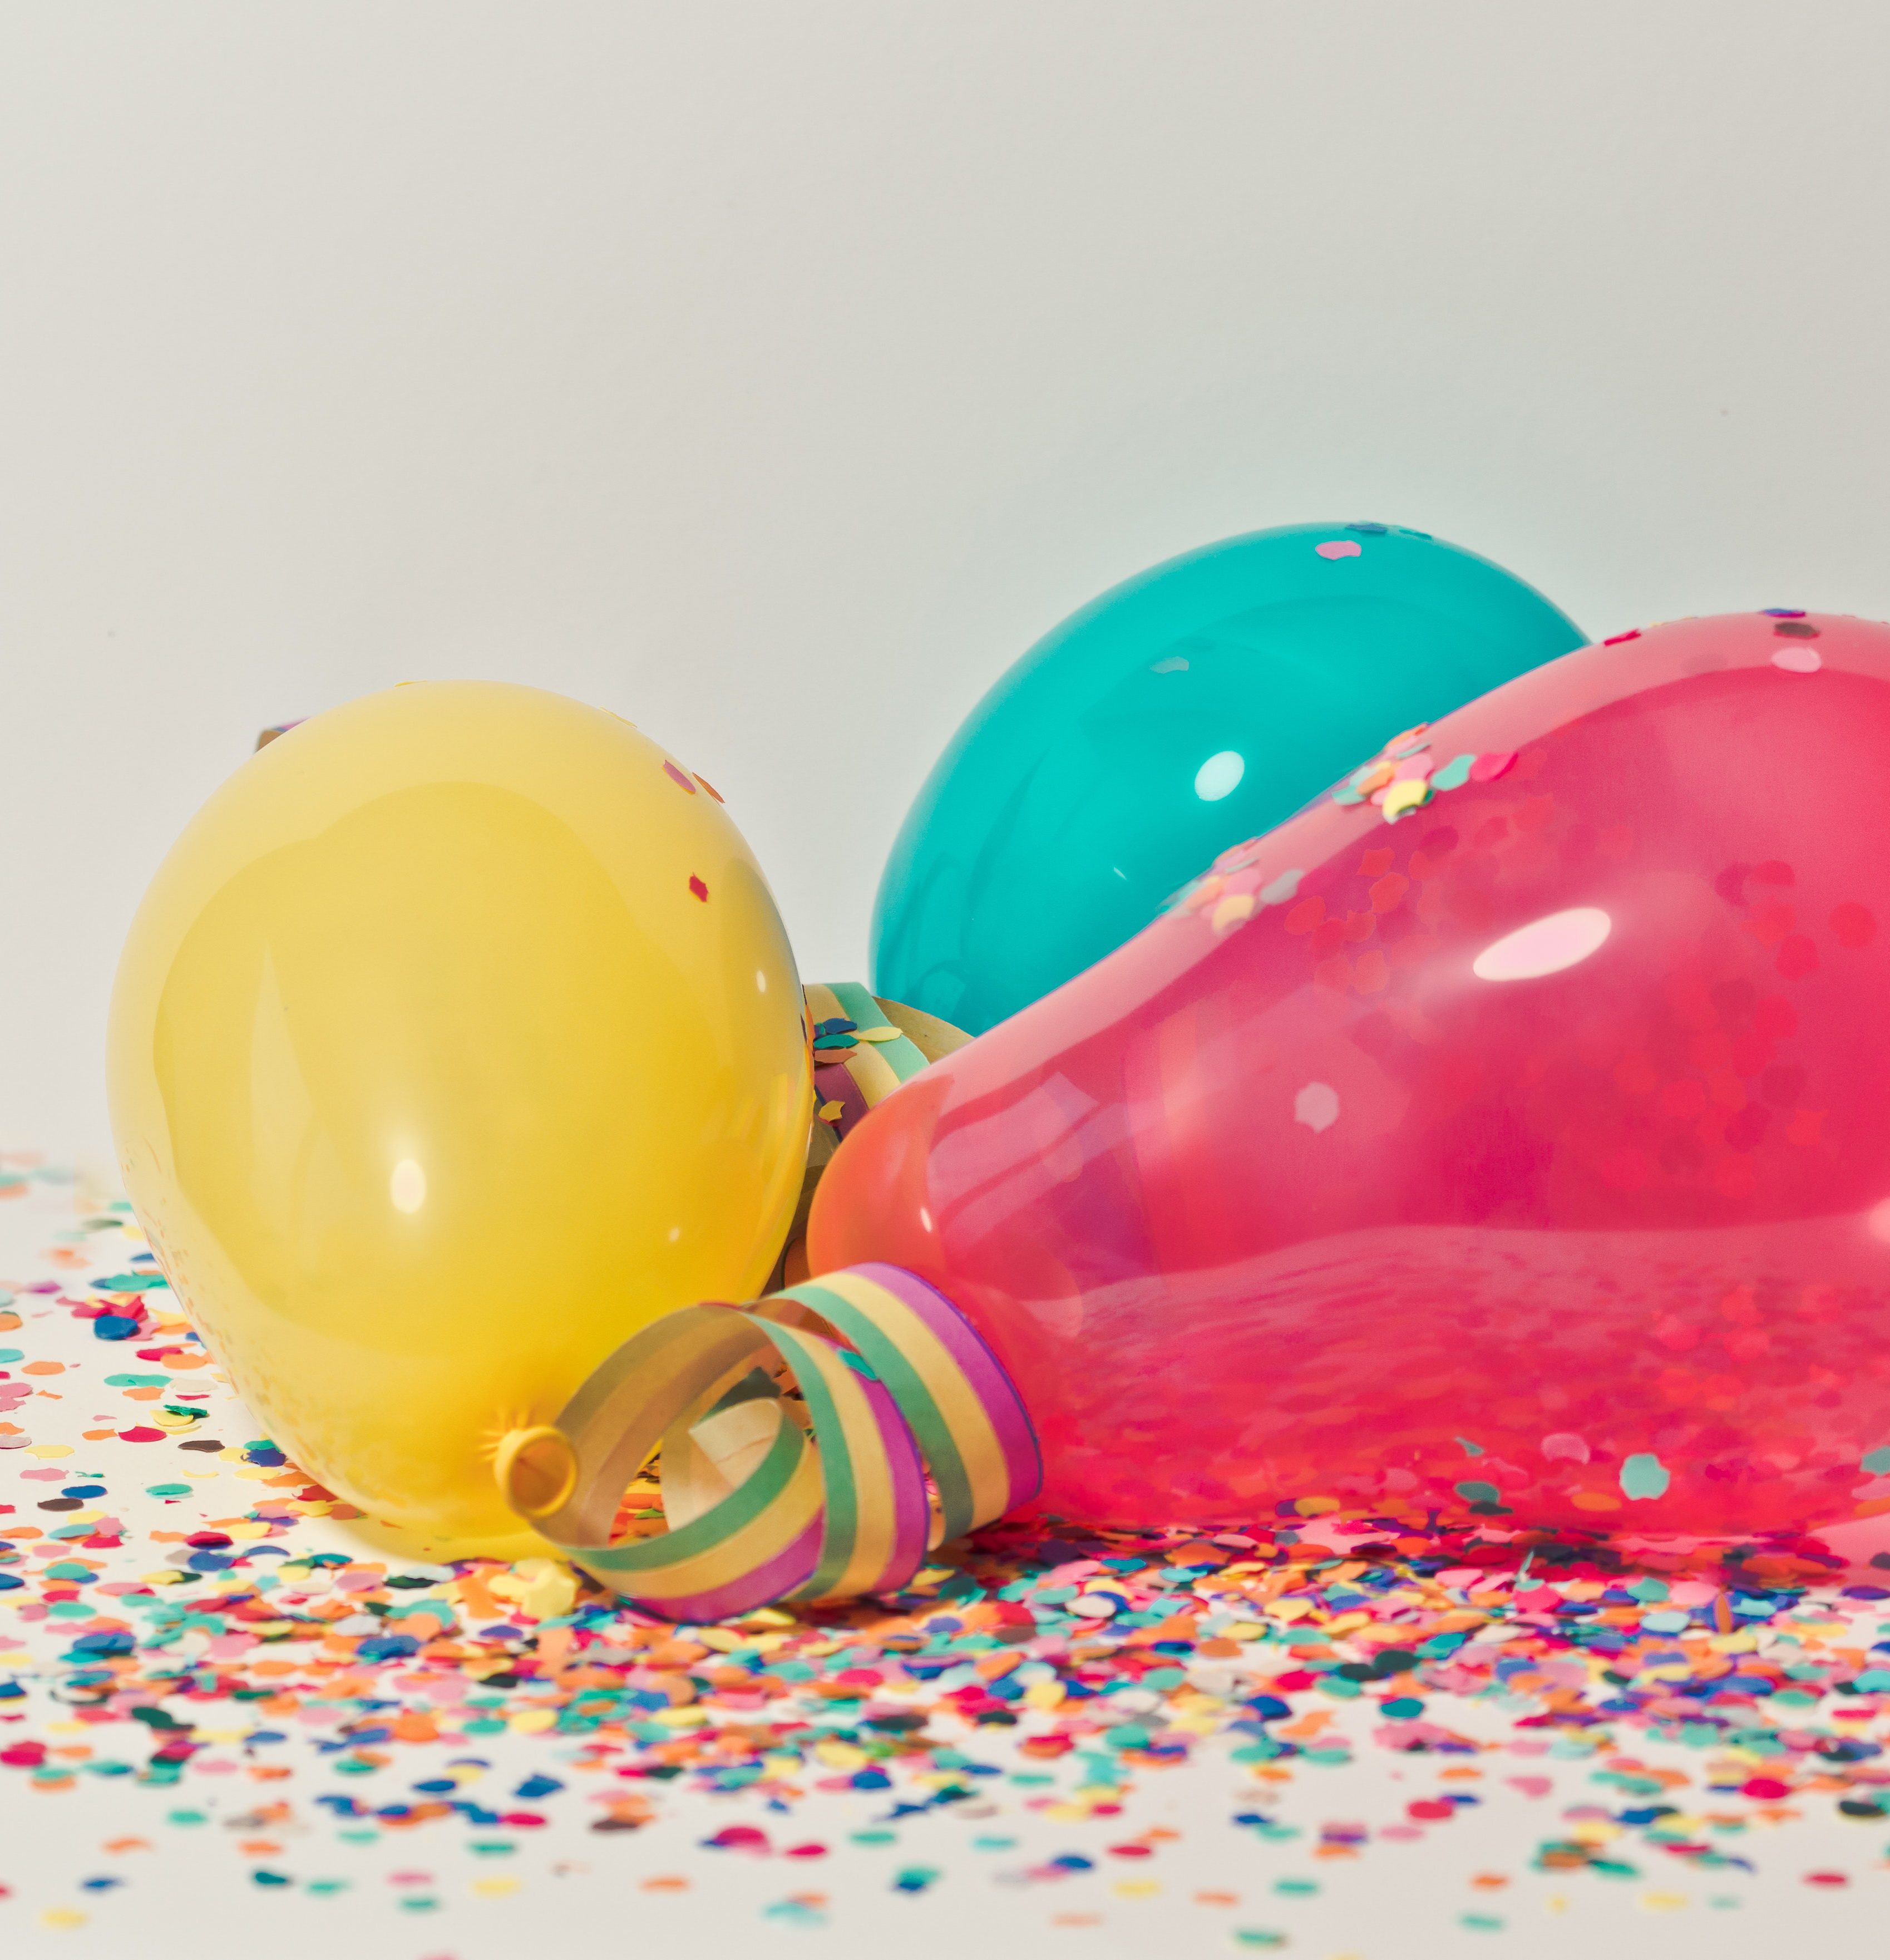 yellow, blue and pink balloons on confetti